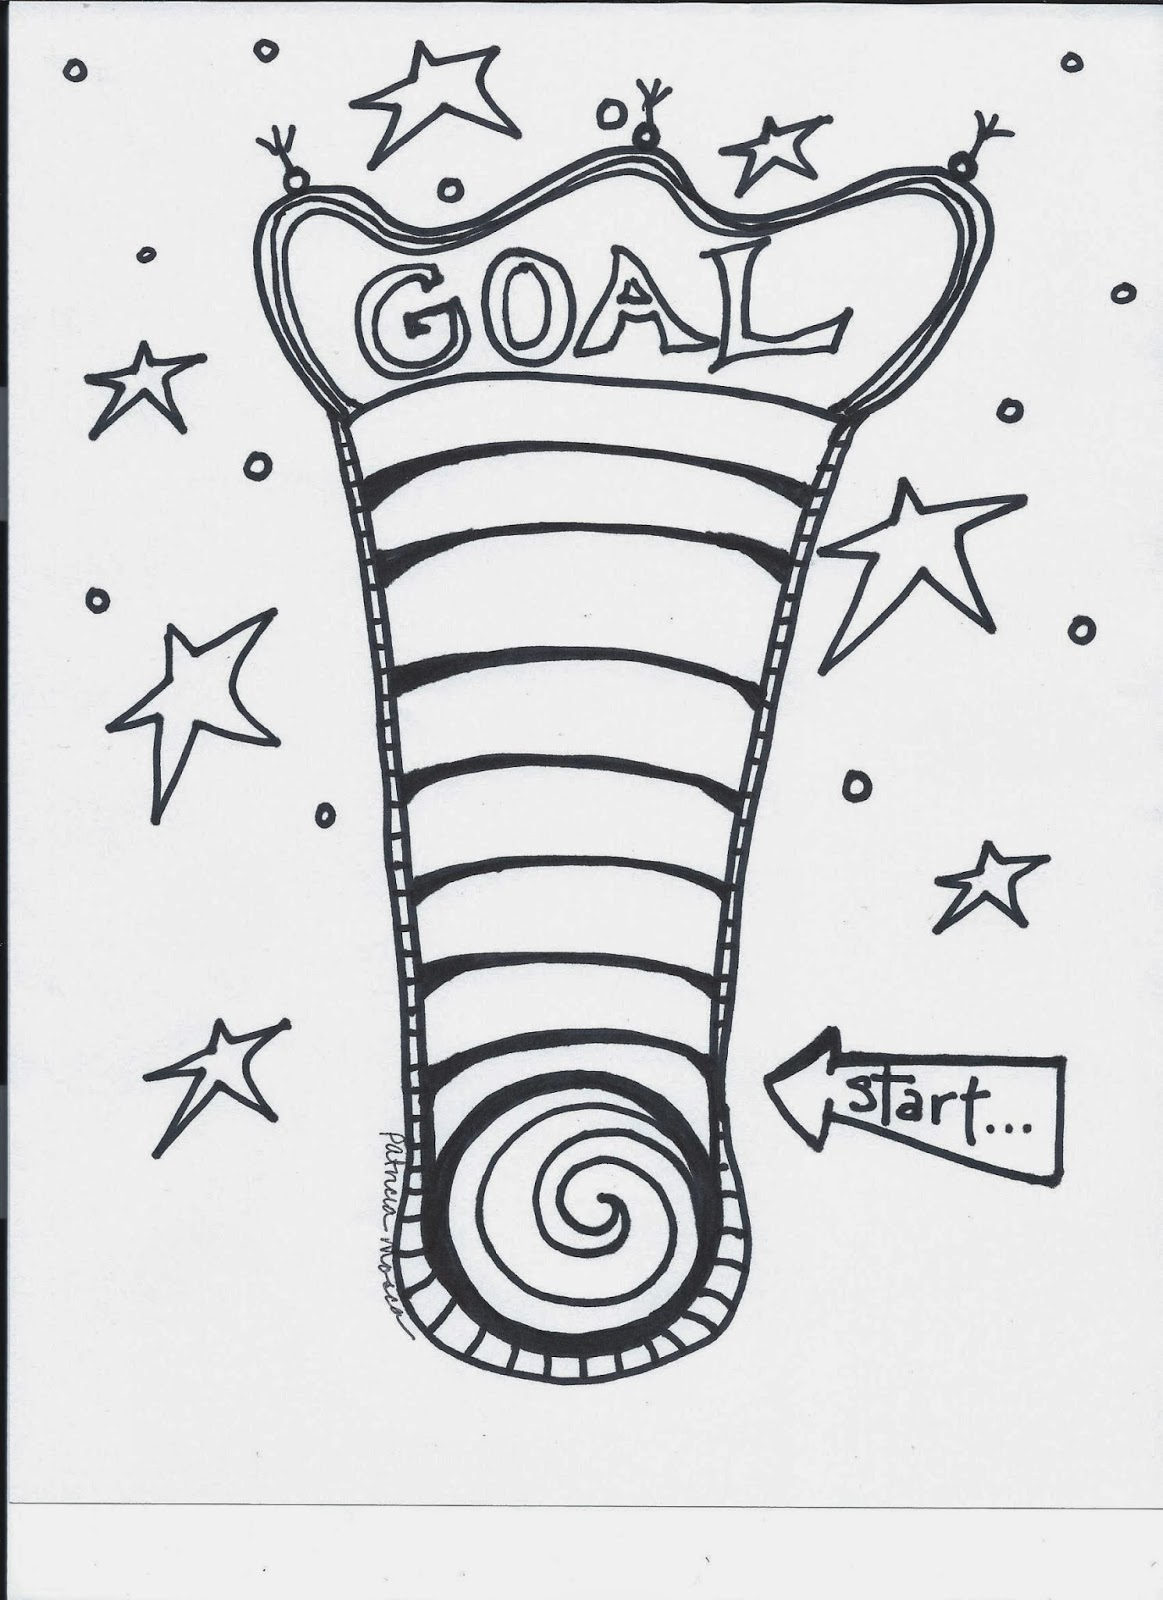 goals coloring pages - photo#20